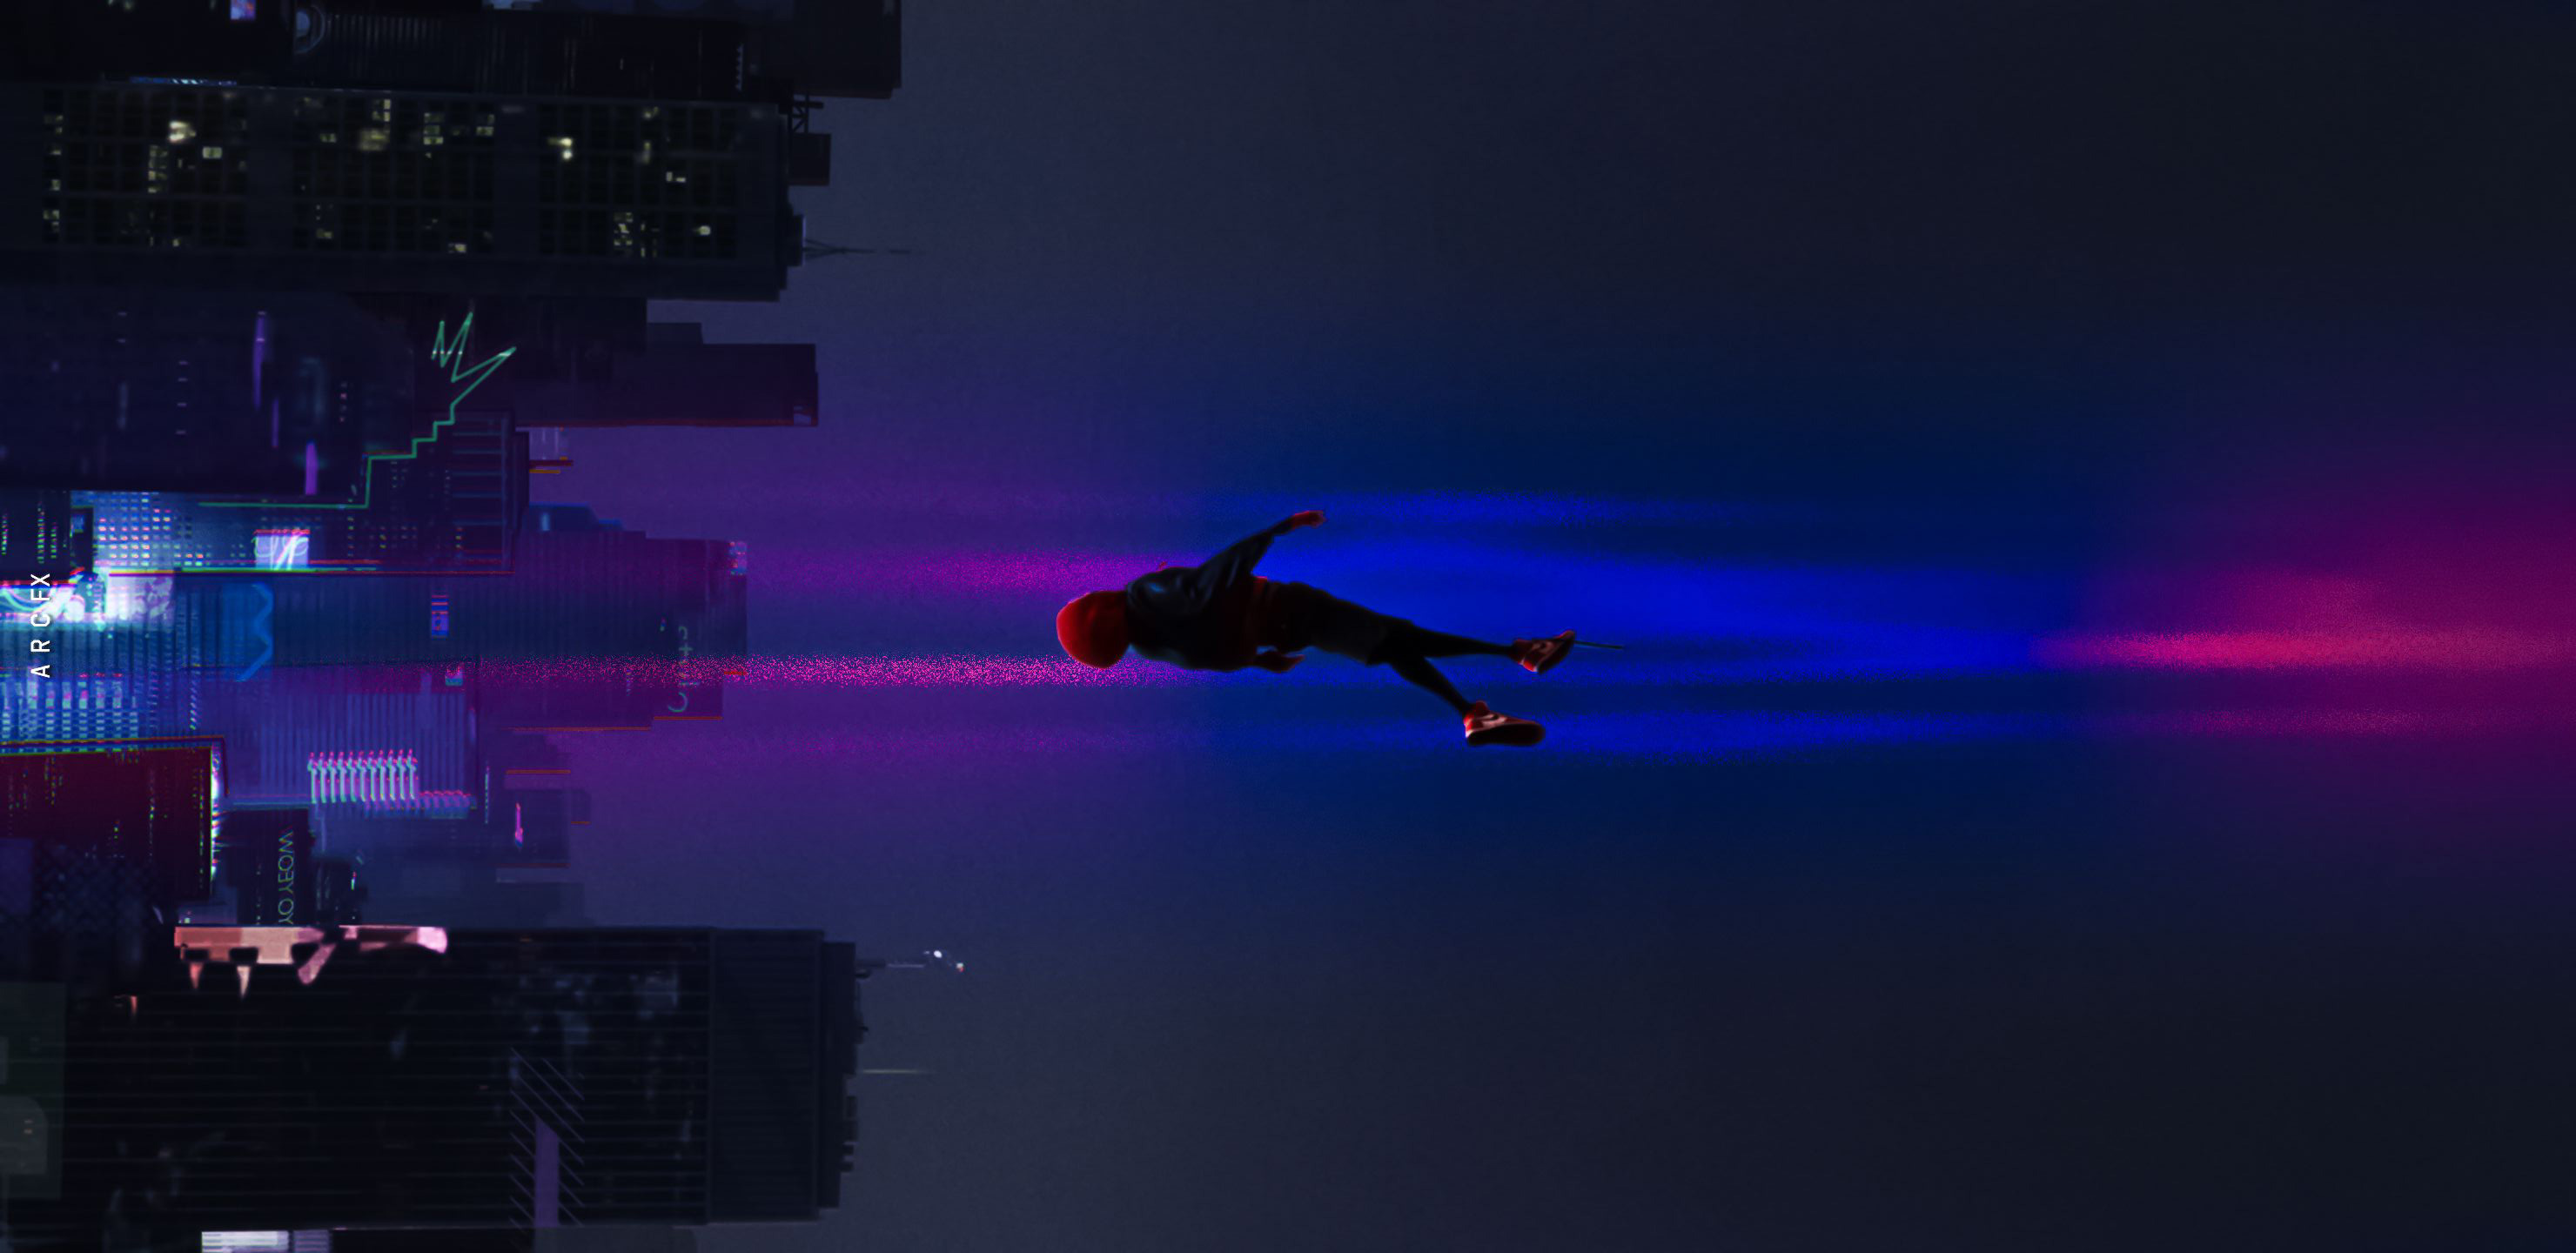 Anime Girls 2960x1440 Wallpaper 2880x1800 Spiderman Into The Spider Verse Movie 2018 Art